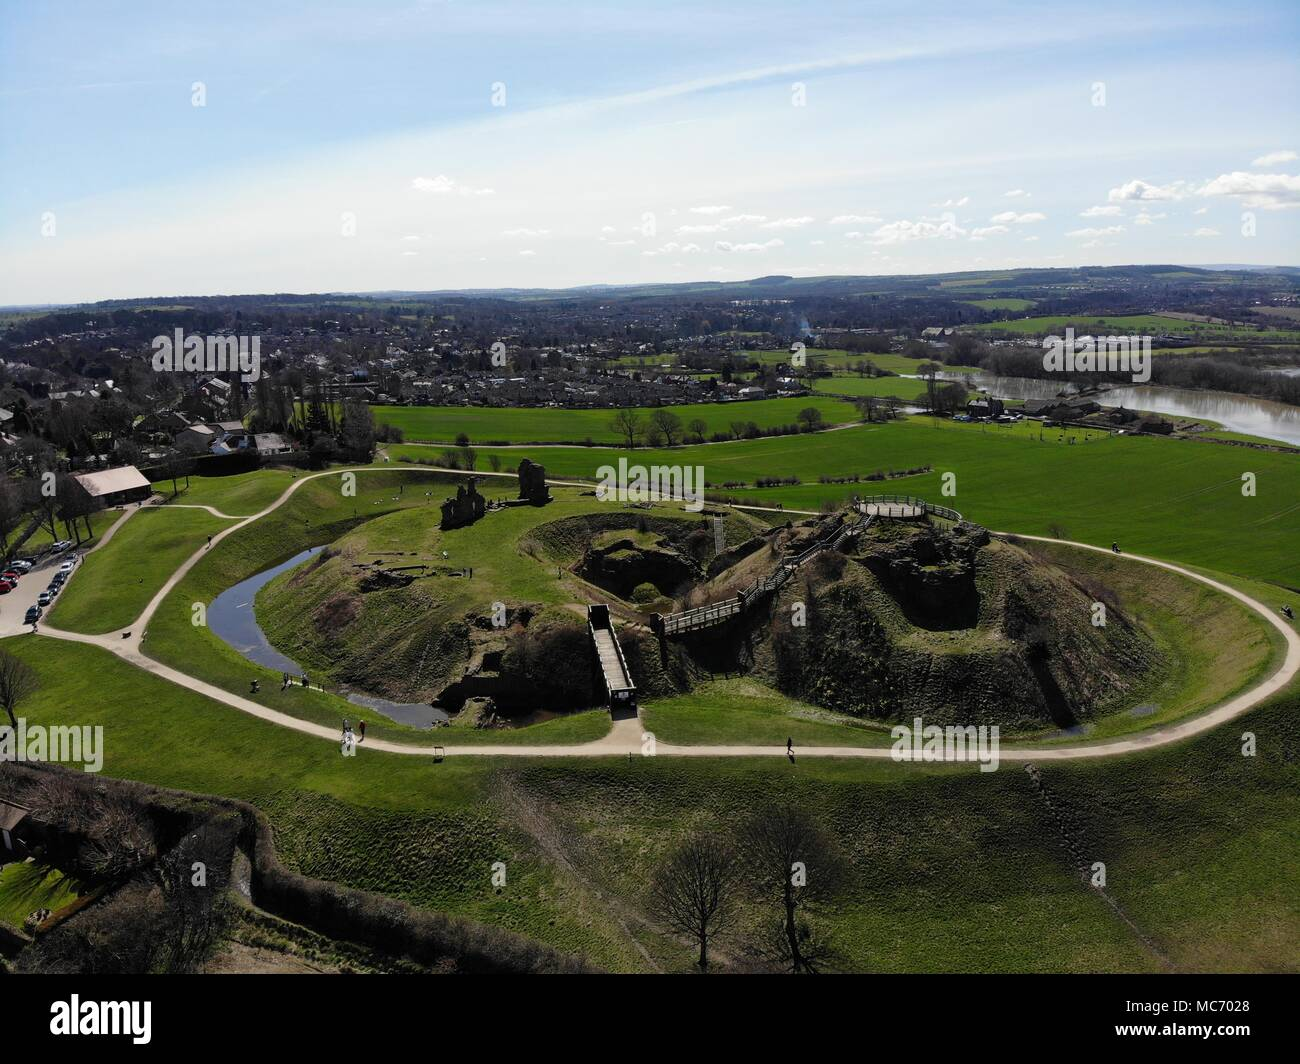 Aerial photos of Sandel Castle in Wakefield in the UK, the ruins of the castle have a moat around the castle grounds, it's also covered in green grass - Stock Image